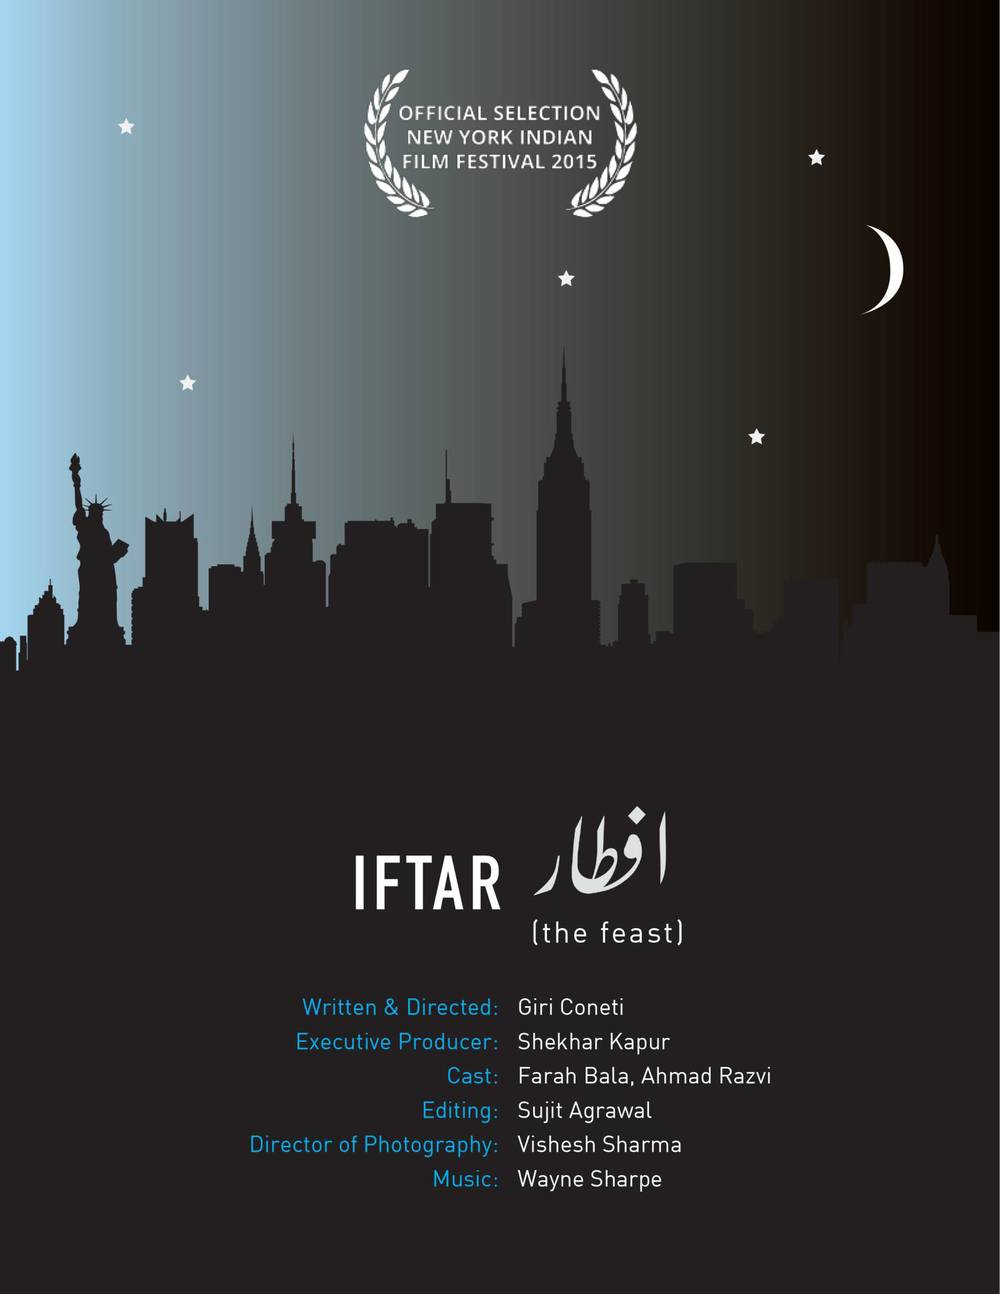 IFTAR  / Dir: GiriMohan Coneti   Premiered at New York Indian Film Festival